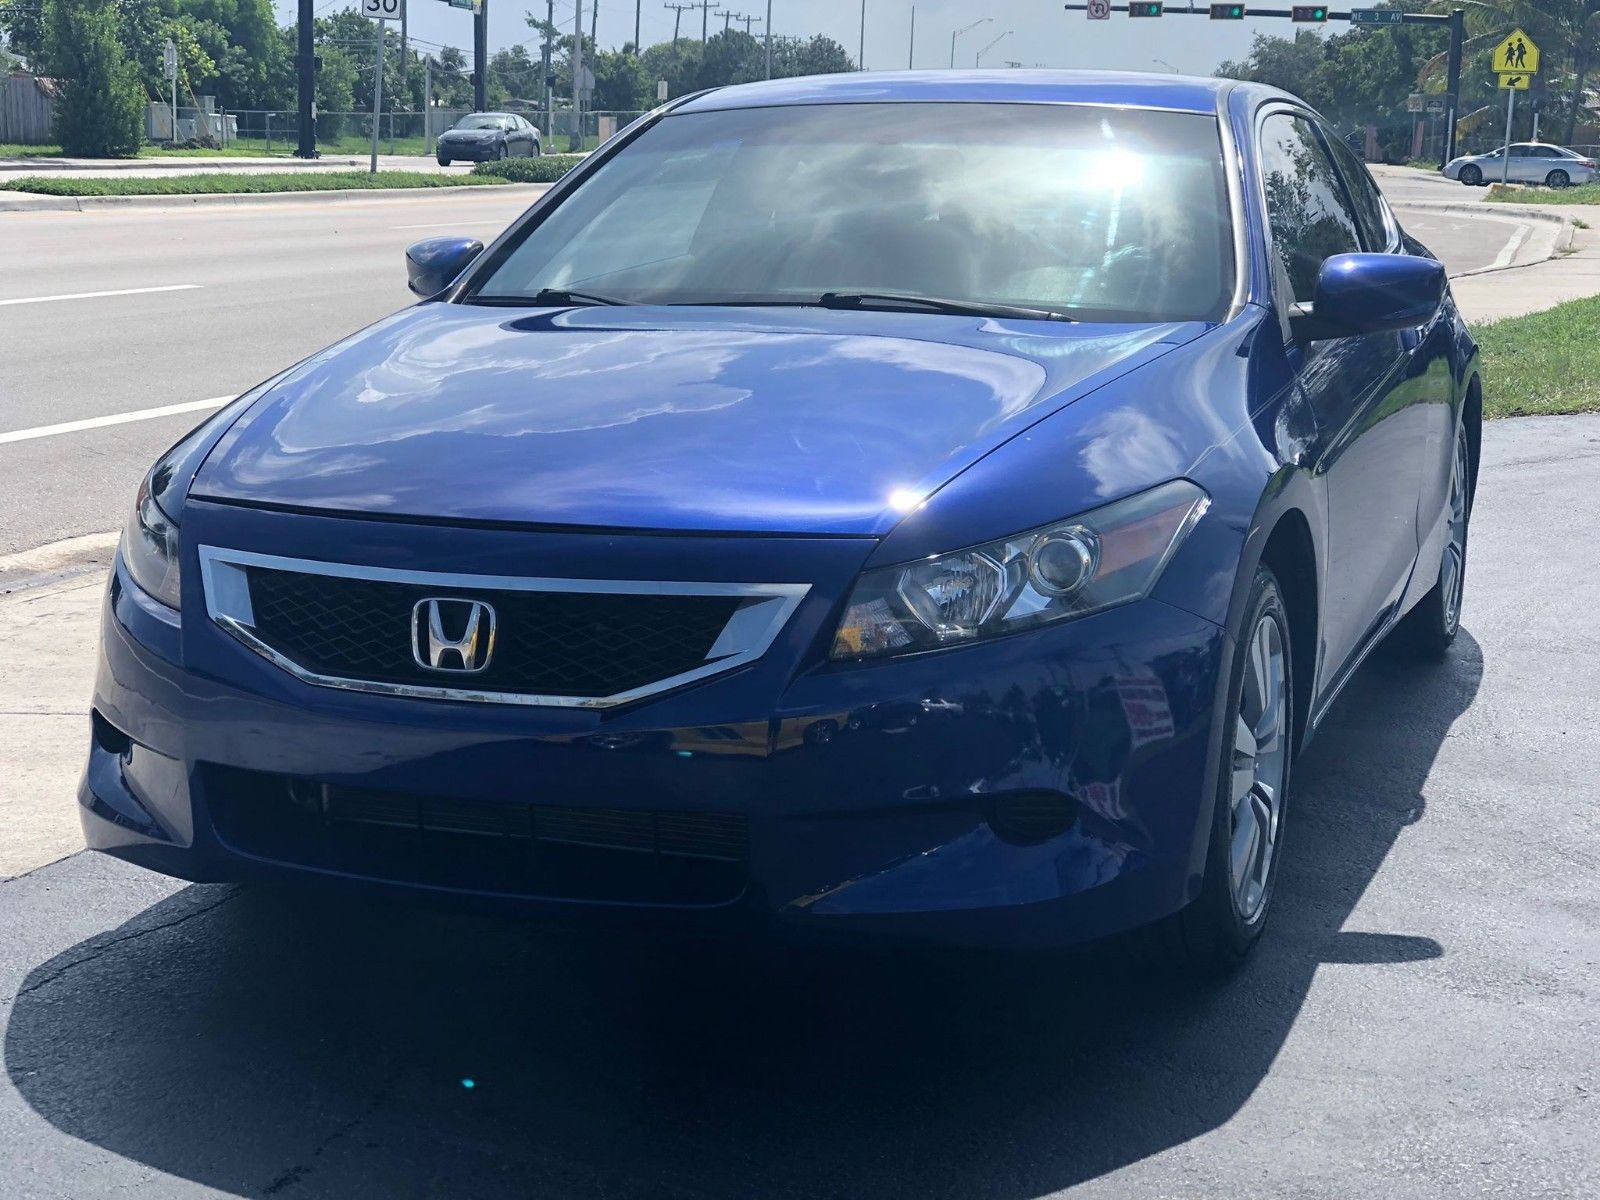 Awesome 2009 Honda Accord 2009 Honda Accord LX S 2dr Coupe 2.4L I4 Cold AC  Drives Great *FLORIDA* L@@K 2018